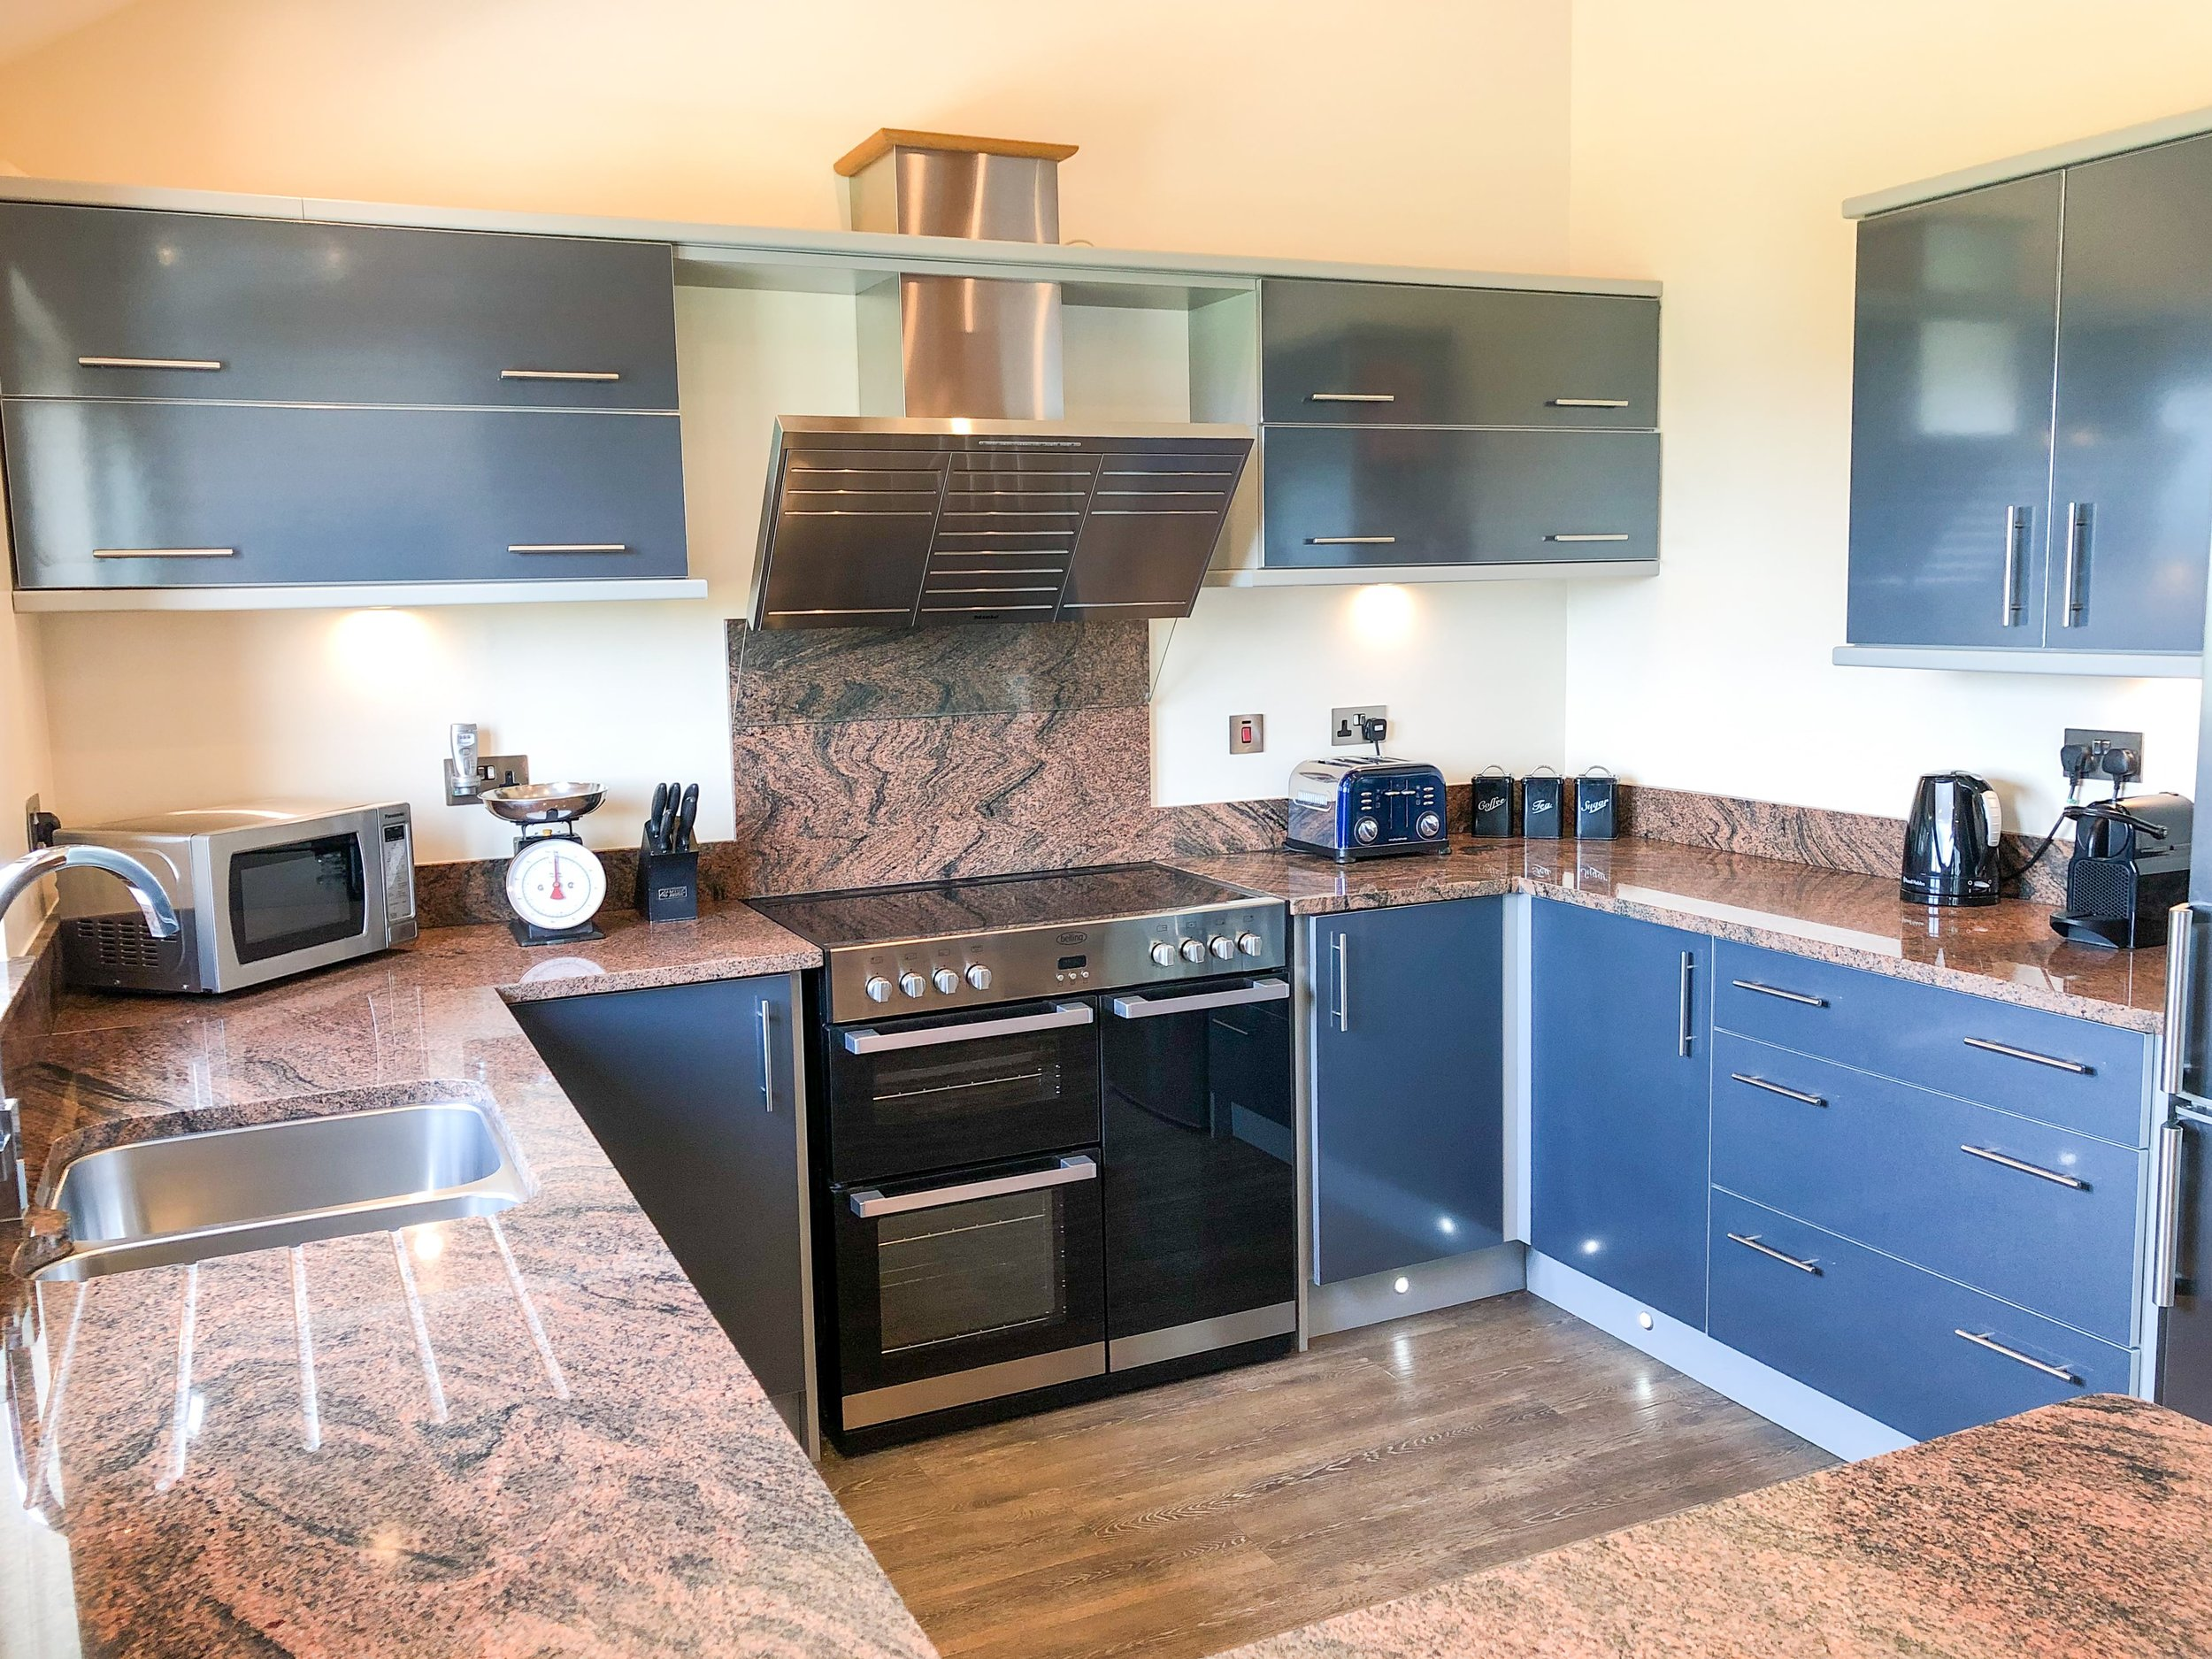 Fully equipped kitchen with double electric oven and granite worktops